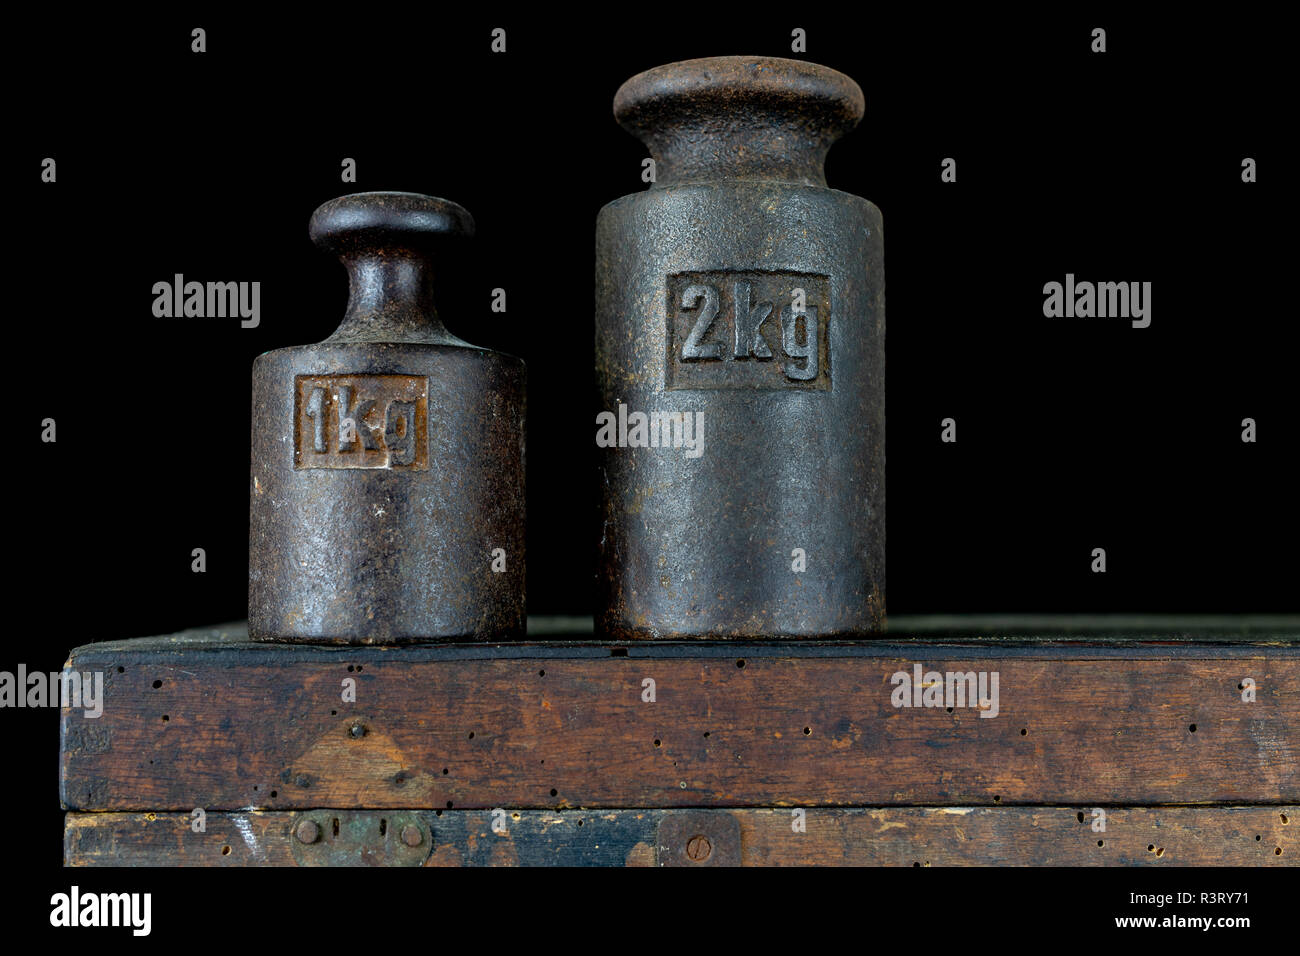 A kilogram weight used for weighing a given quantity in the store. Weights of one kilogram and two kilograms. Dark background. - Stock Image